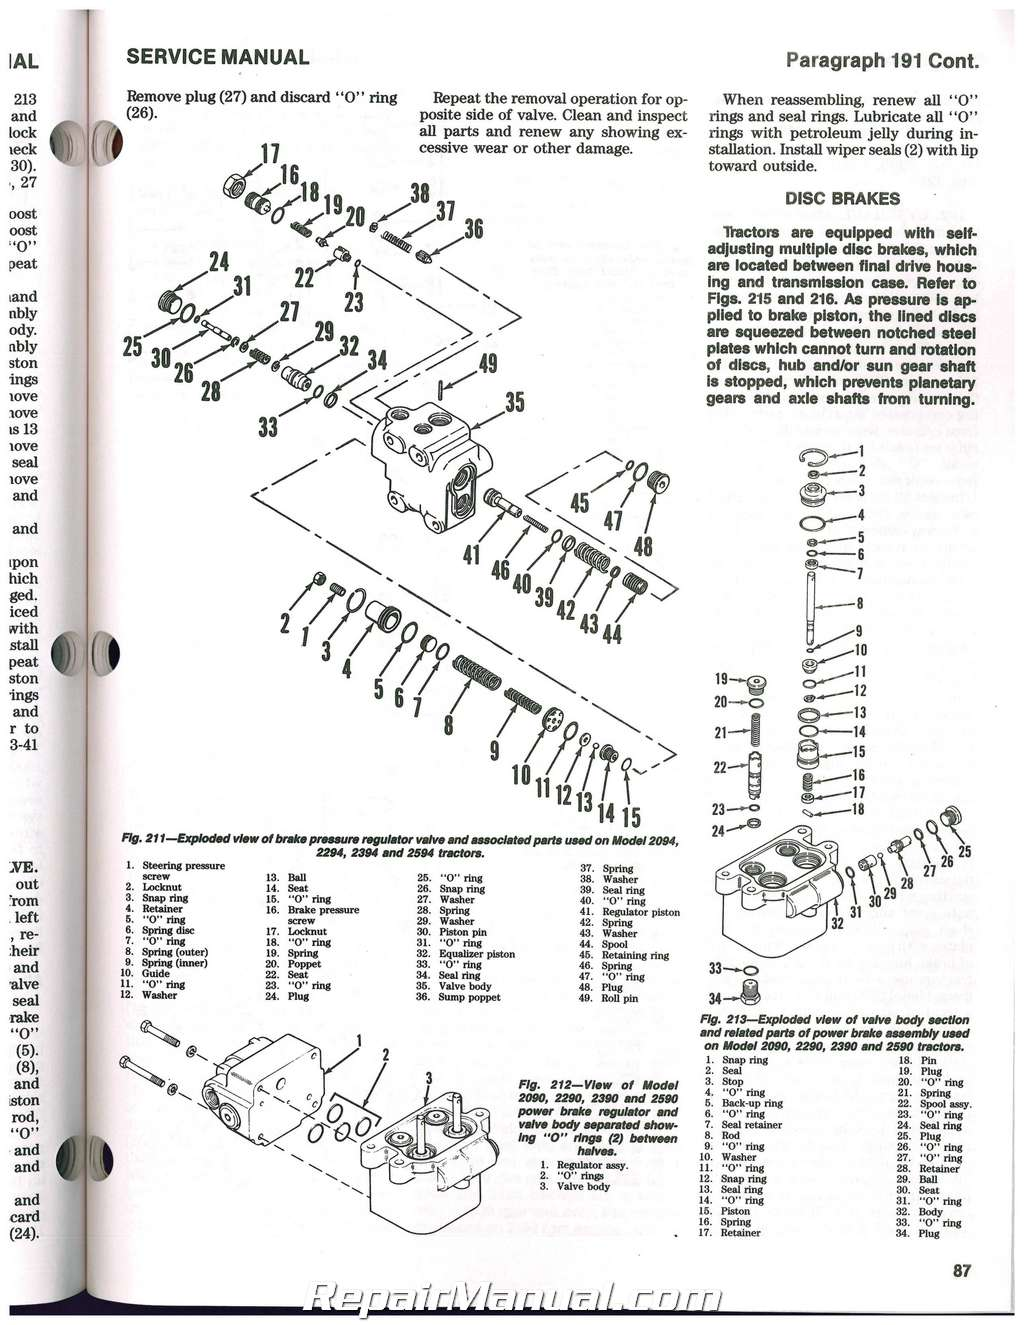 hight resolution of case 2090 wiring diagram wiring diagramcase international 2090 2094 2290 2294 2390 2394 2590 2594 tractor